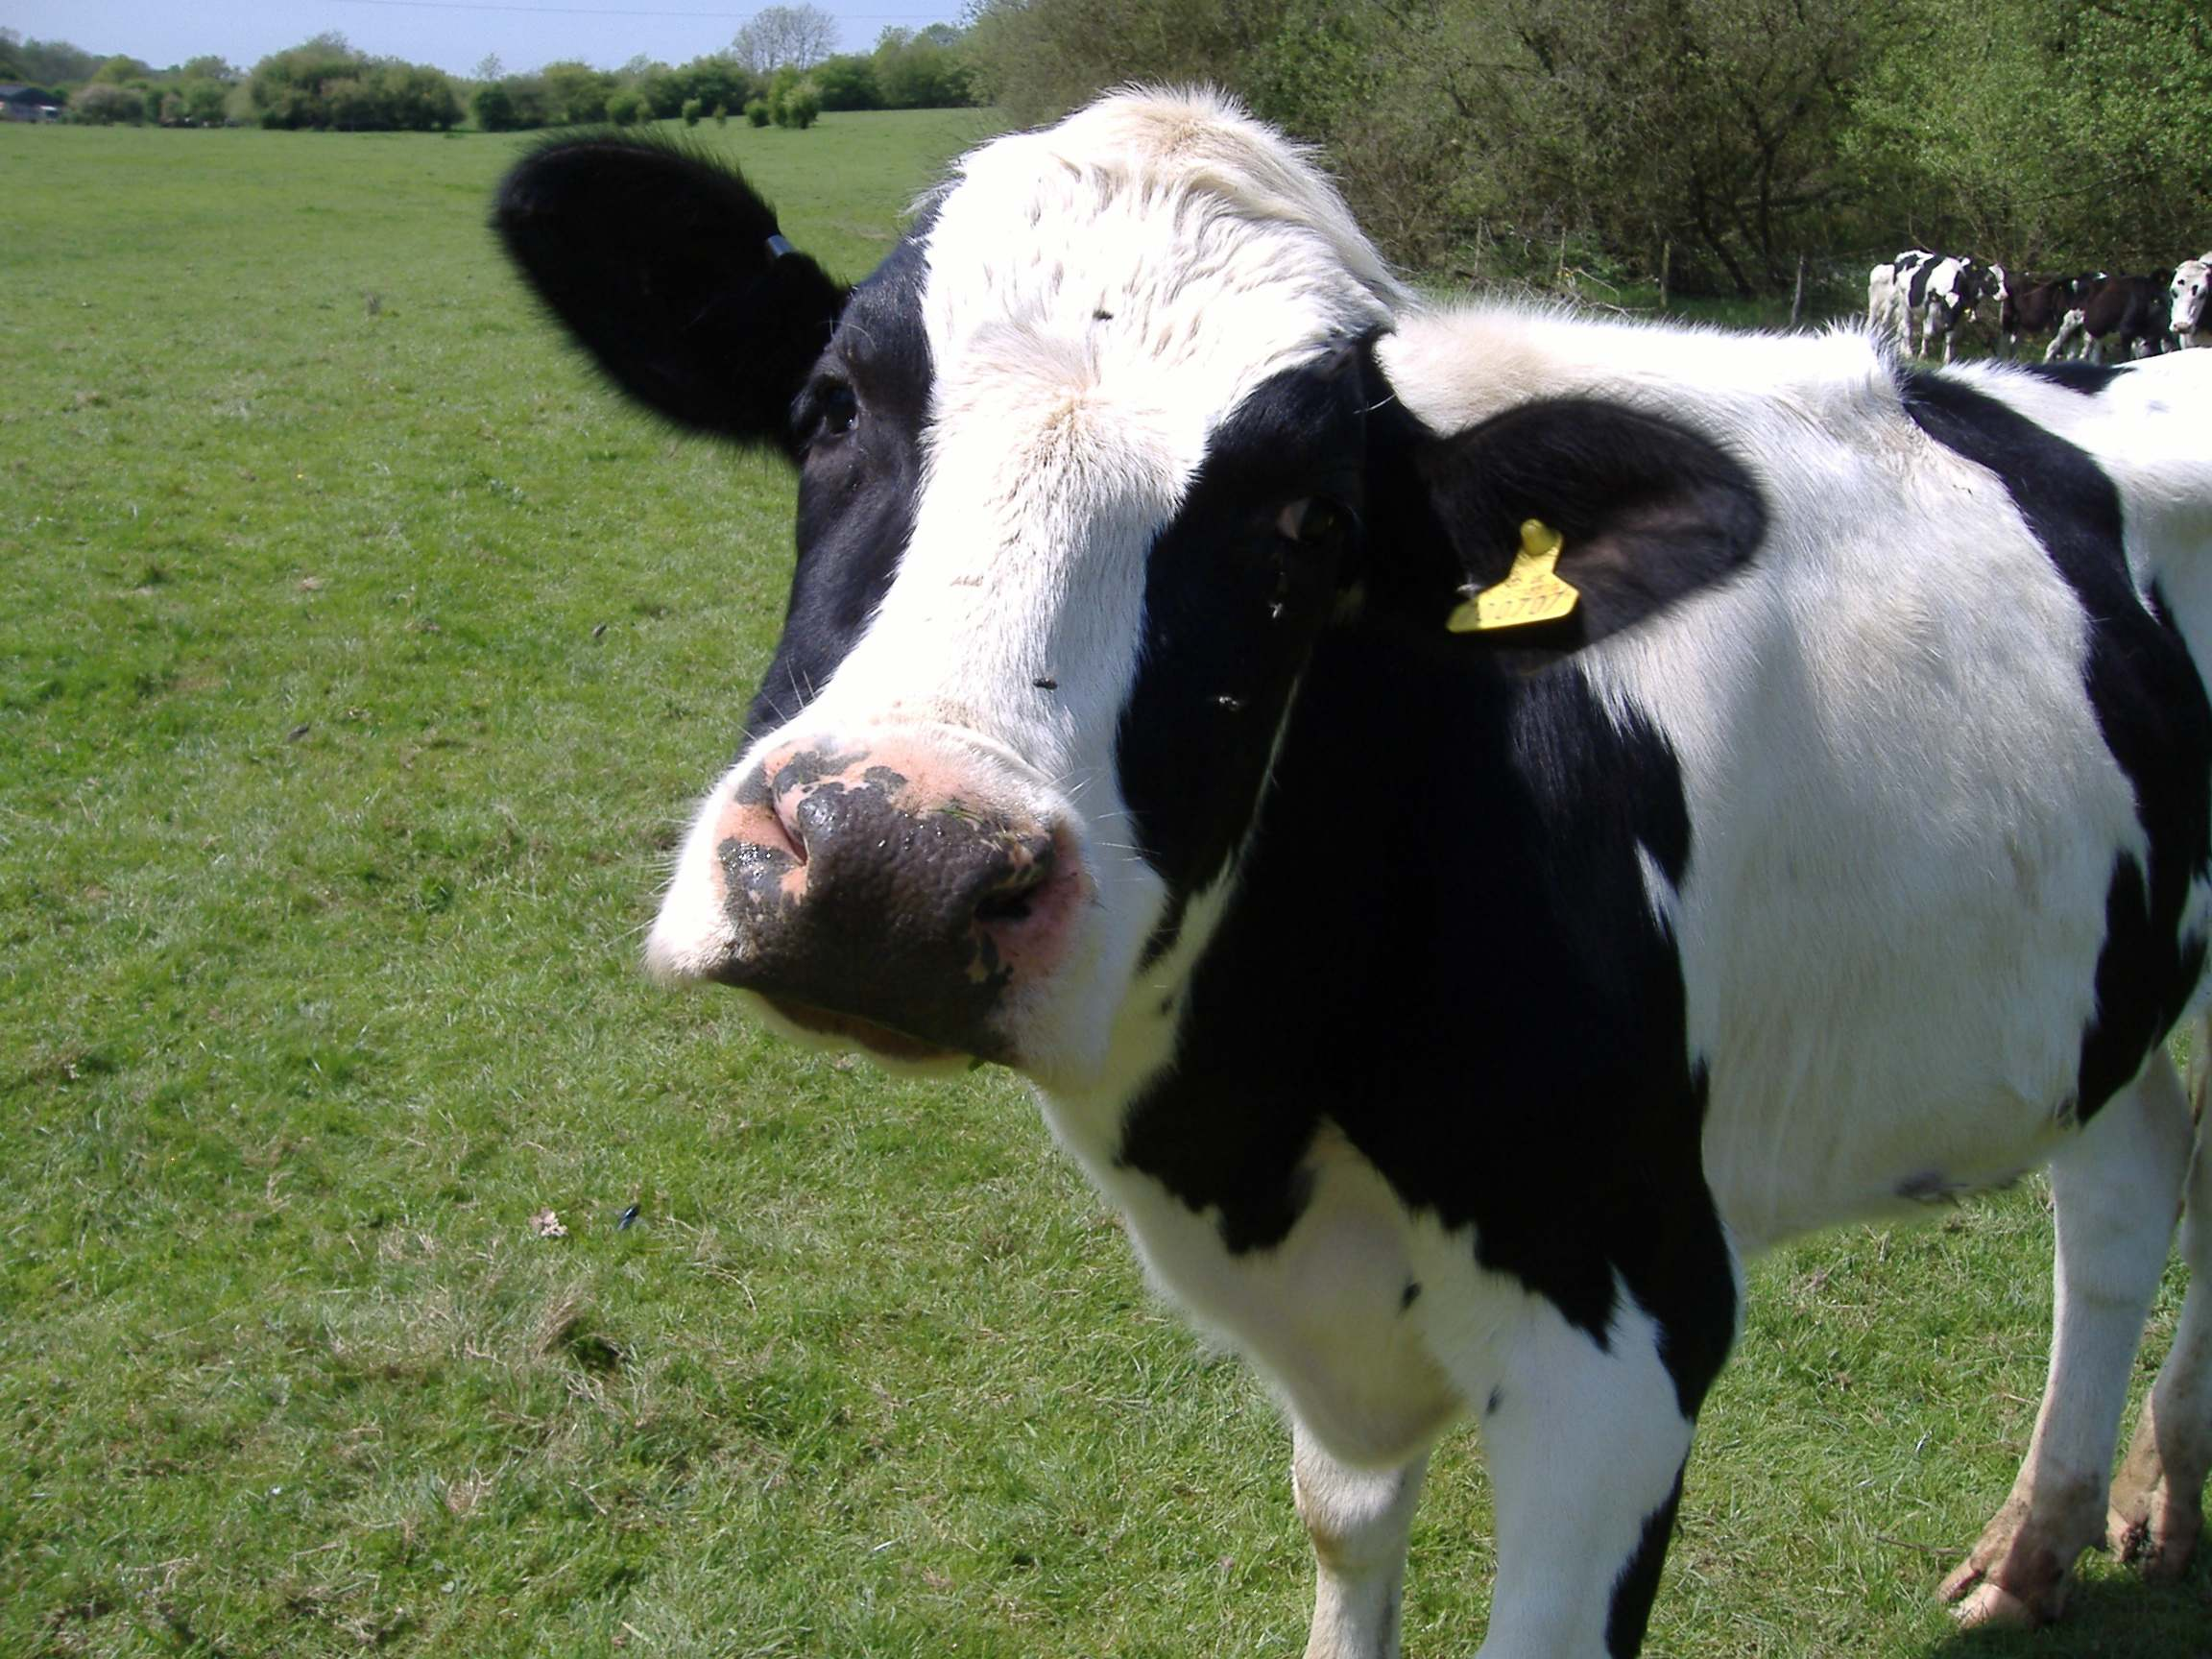 Cow poop could be the next big renewable energy source.